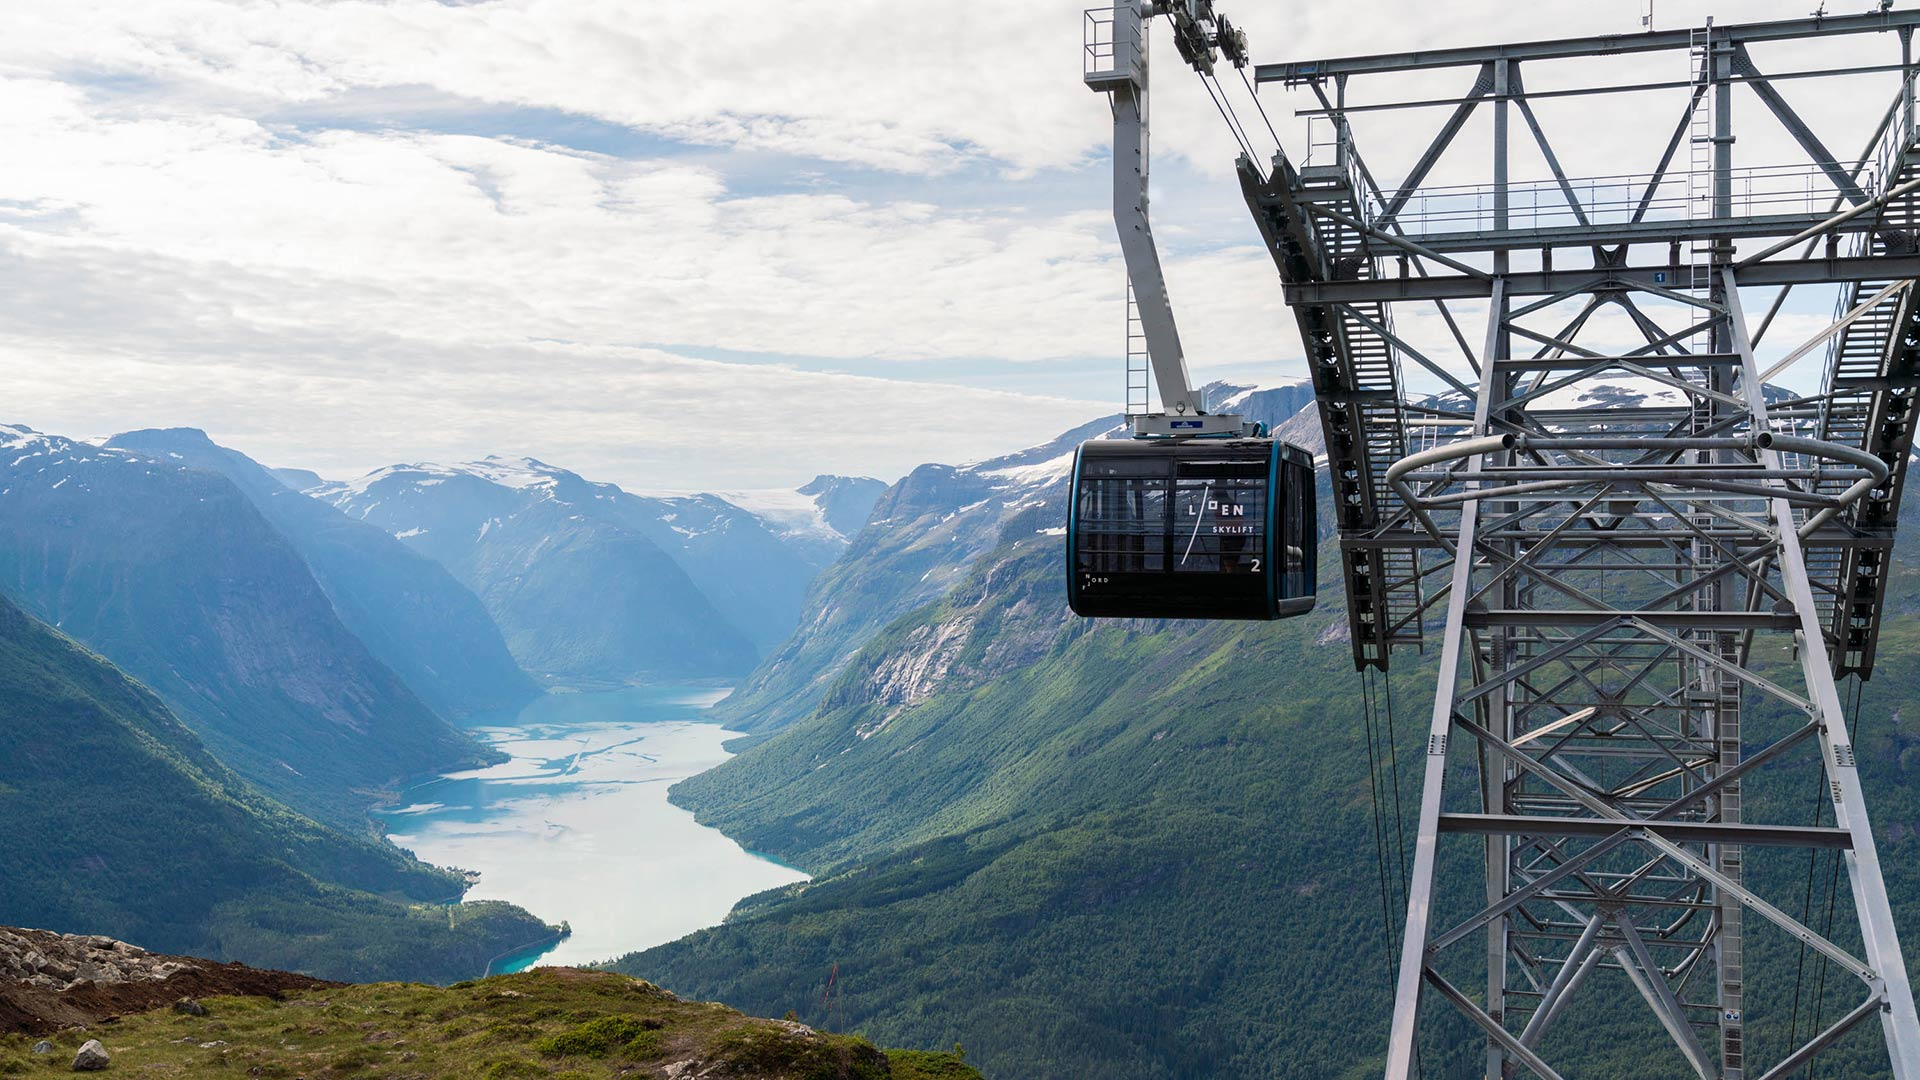 Loen Skylift in Norway